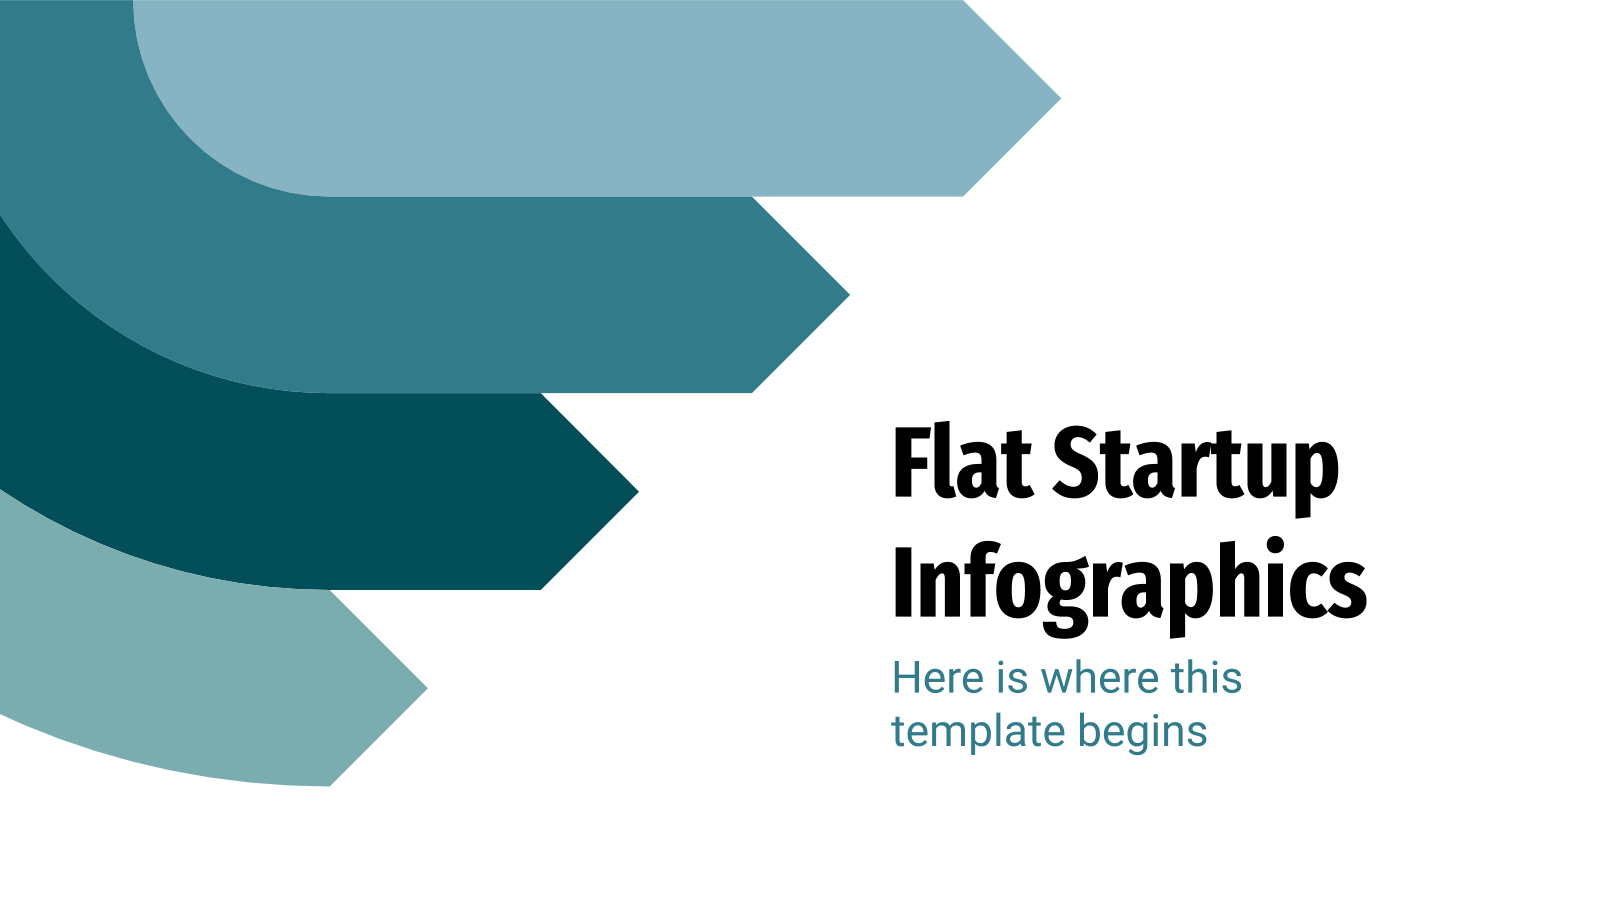 Flat Startup Infographics presentation template